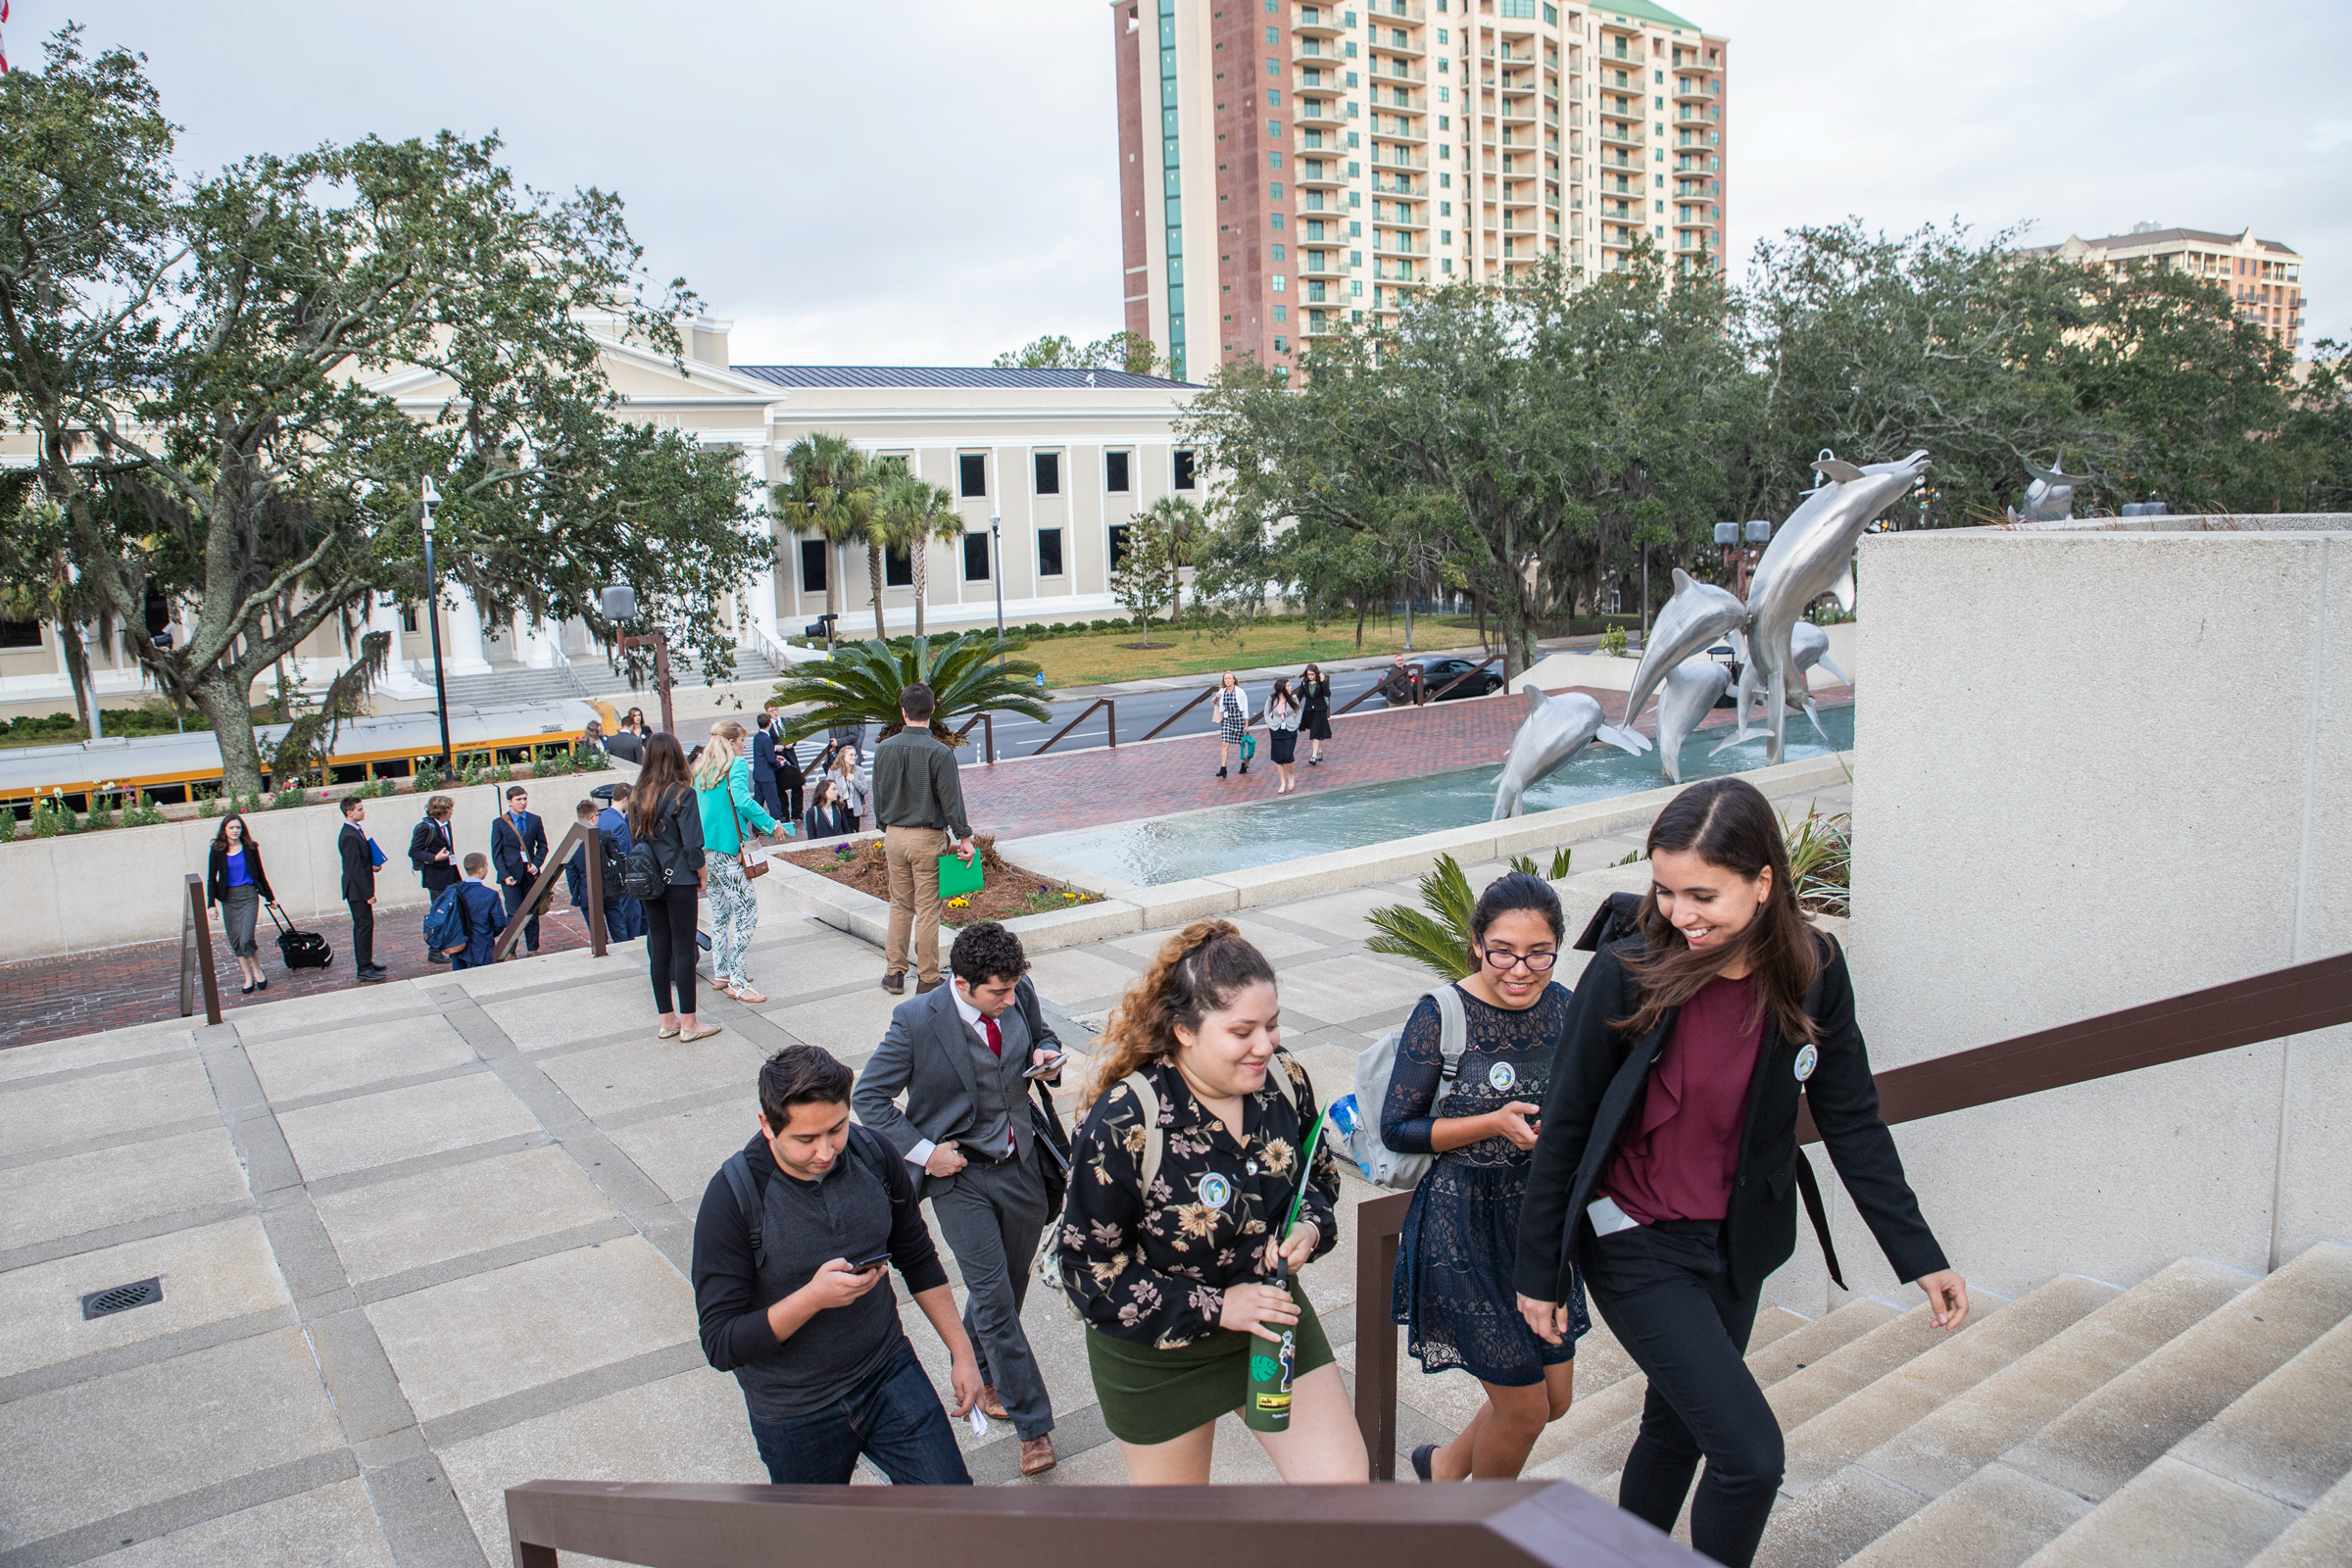 A volunteer group from Audubon Florida arrives at the Florida Capitol building for Everglades Action Day in February 2020, prior to the pandemic, in Tallahassee, FL. Dominic Arenas/Audubon